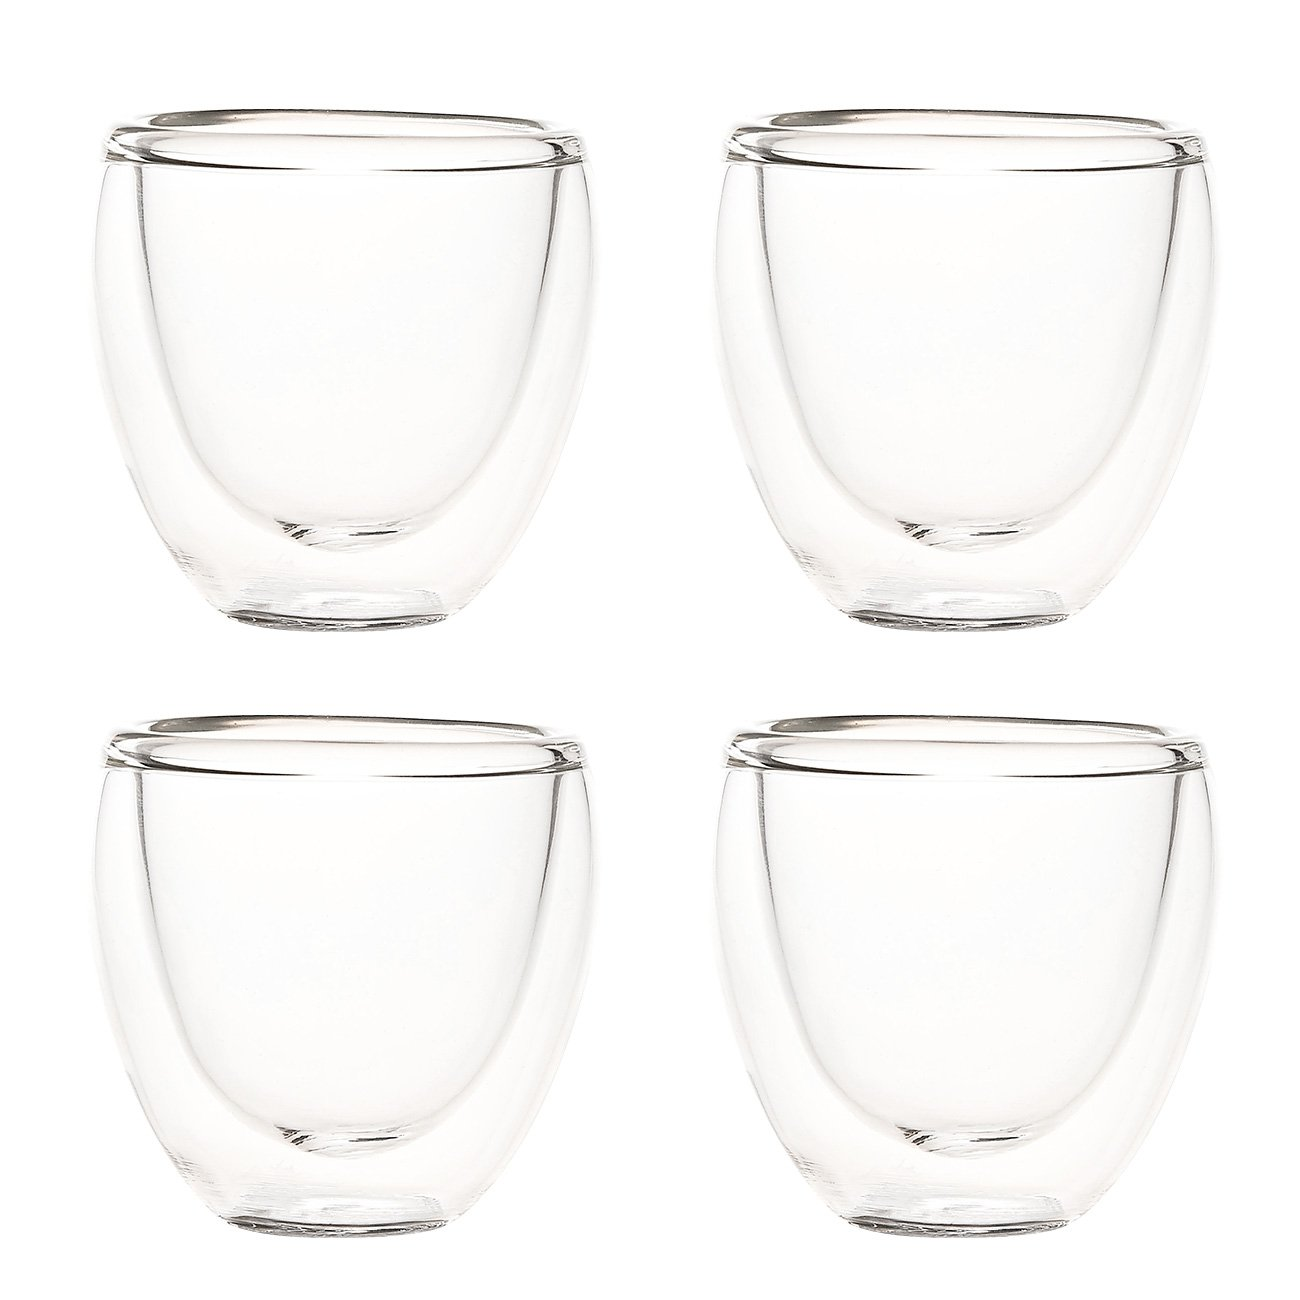 Juvale Set of 4 Espresso Cups - Double Walled Espresso Glasses, Insulated Glass, Coffee Cups, Drinking Glasses for Tea, Water - 2 Ounces